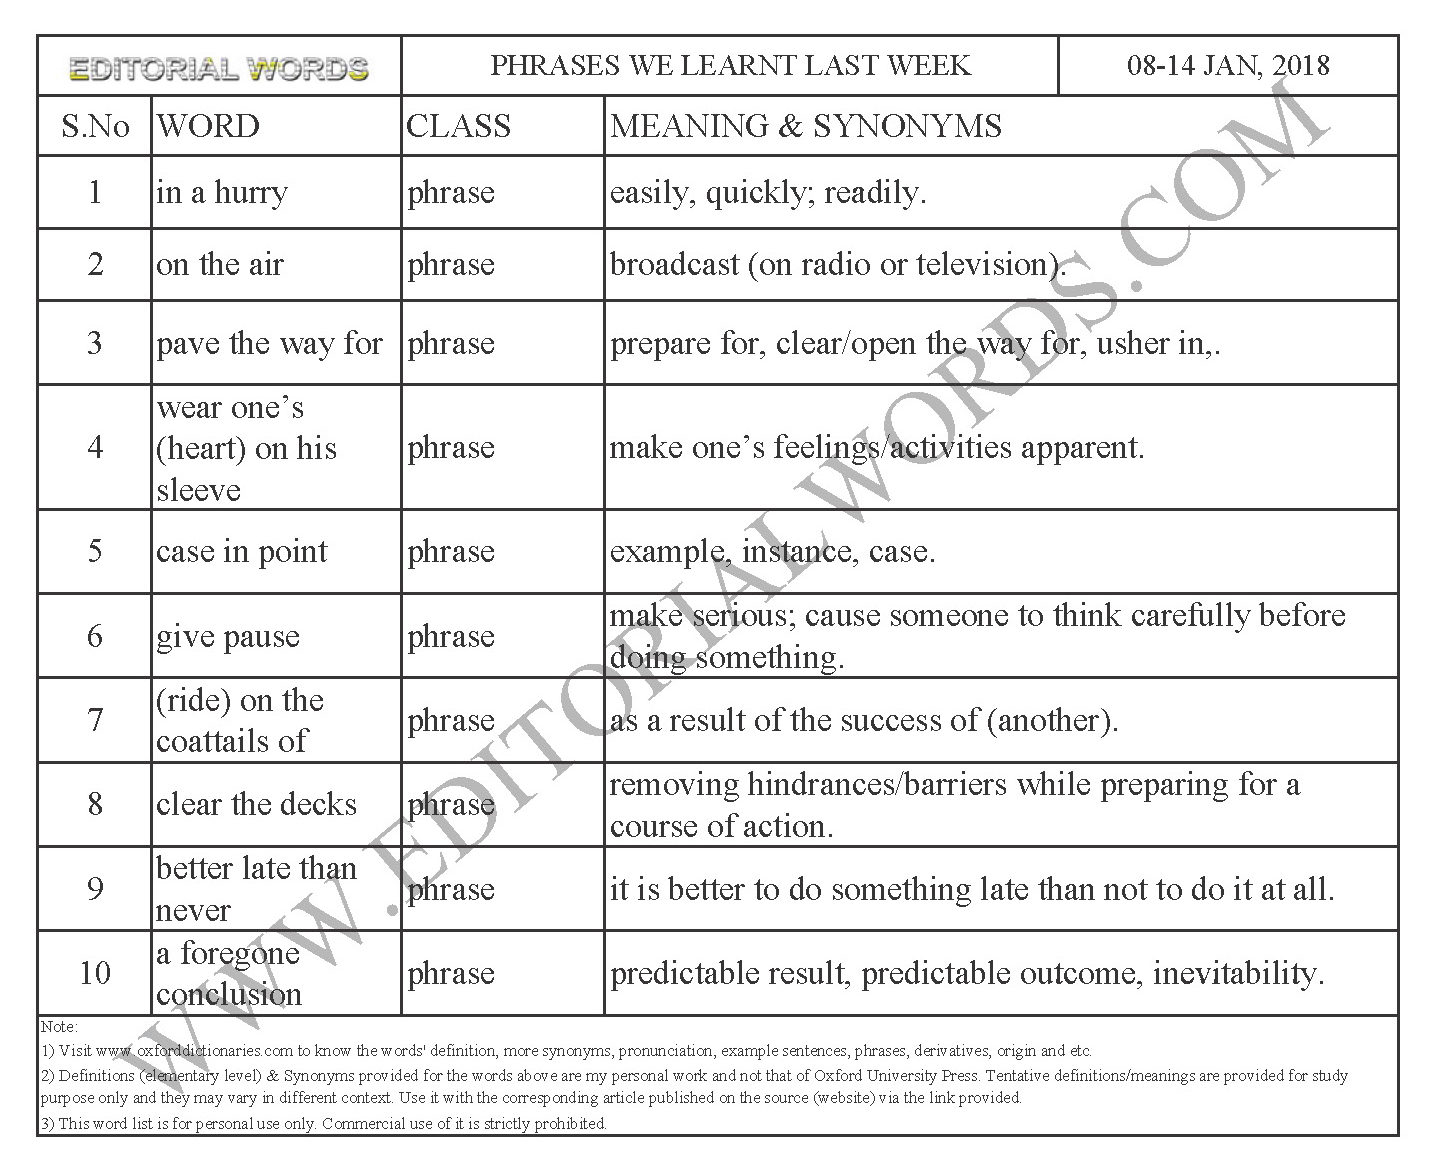 EDITORIAL WORDS TO IMPROVE ENGLISH VOCABULARY 08-14JAN18_IP